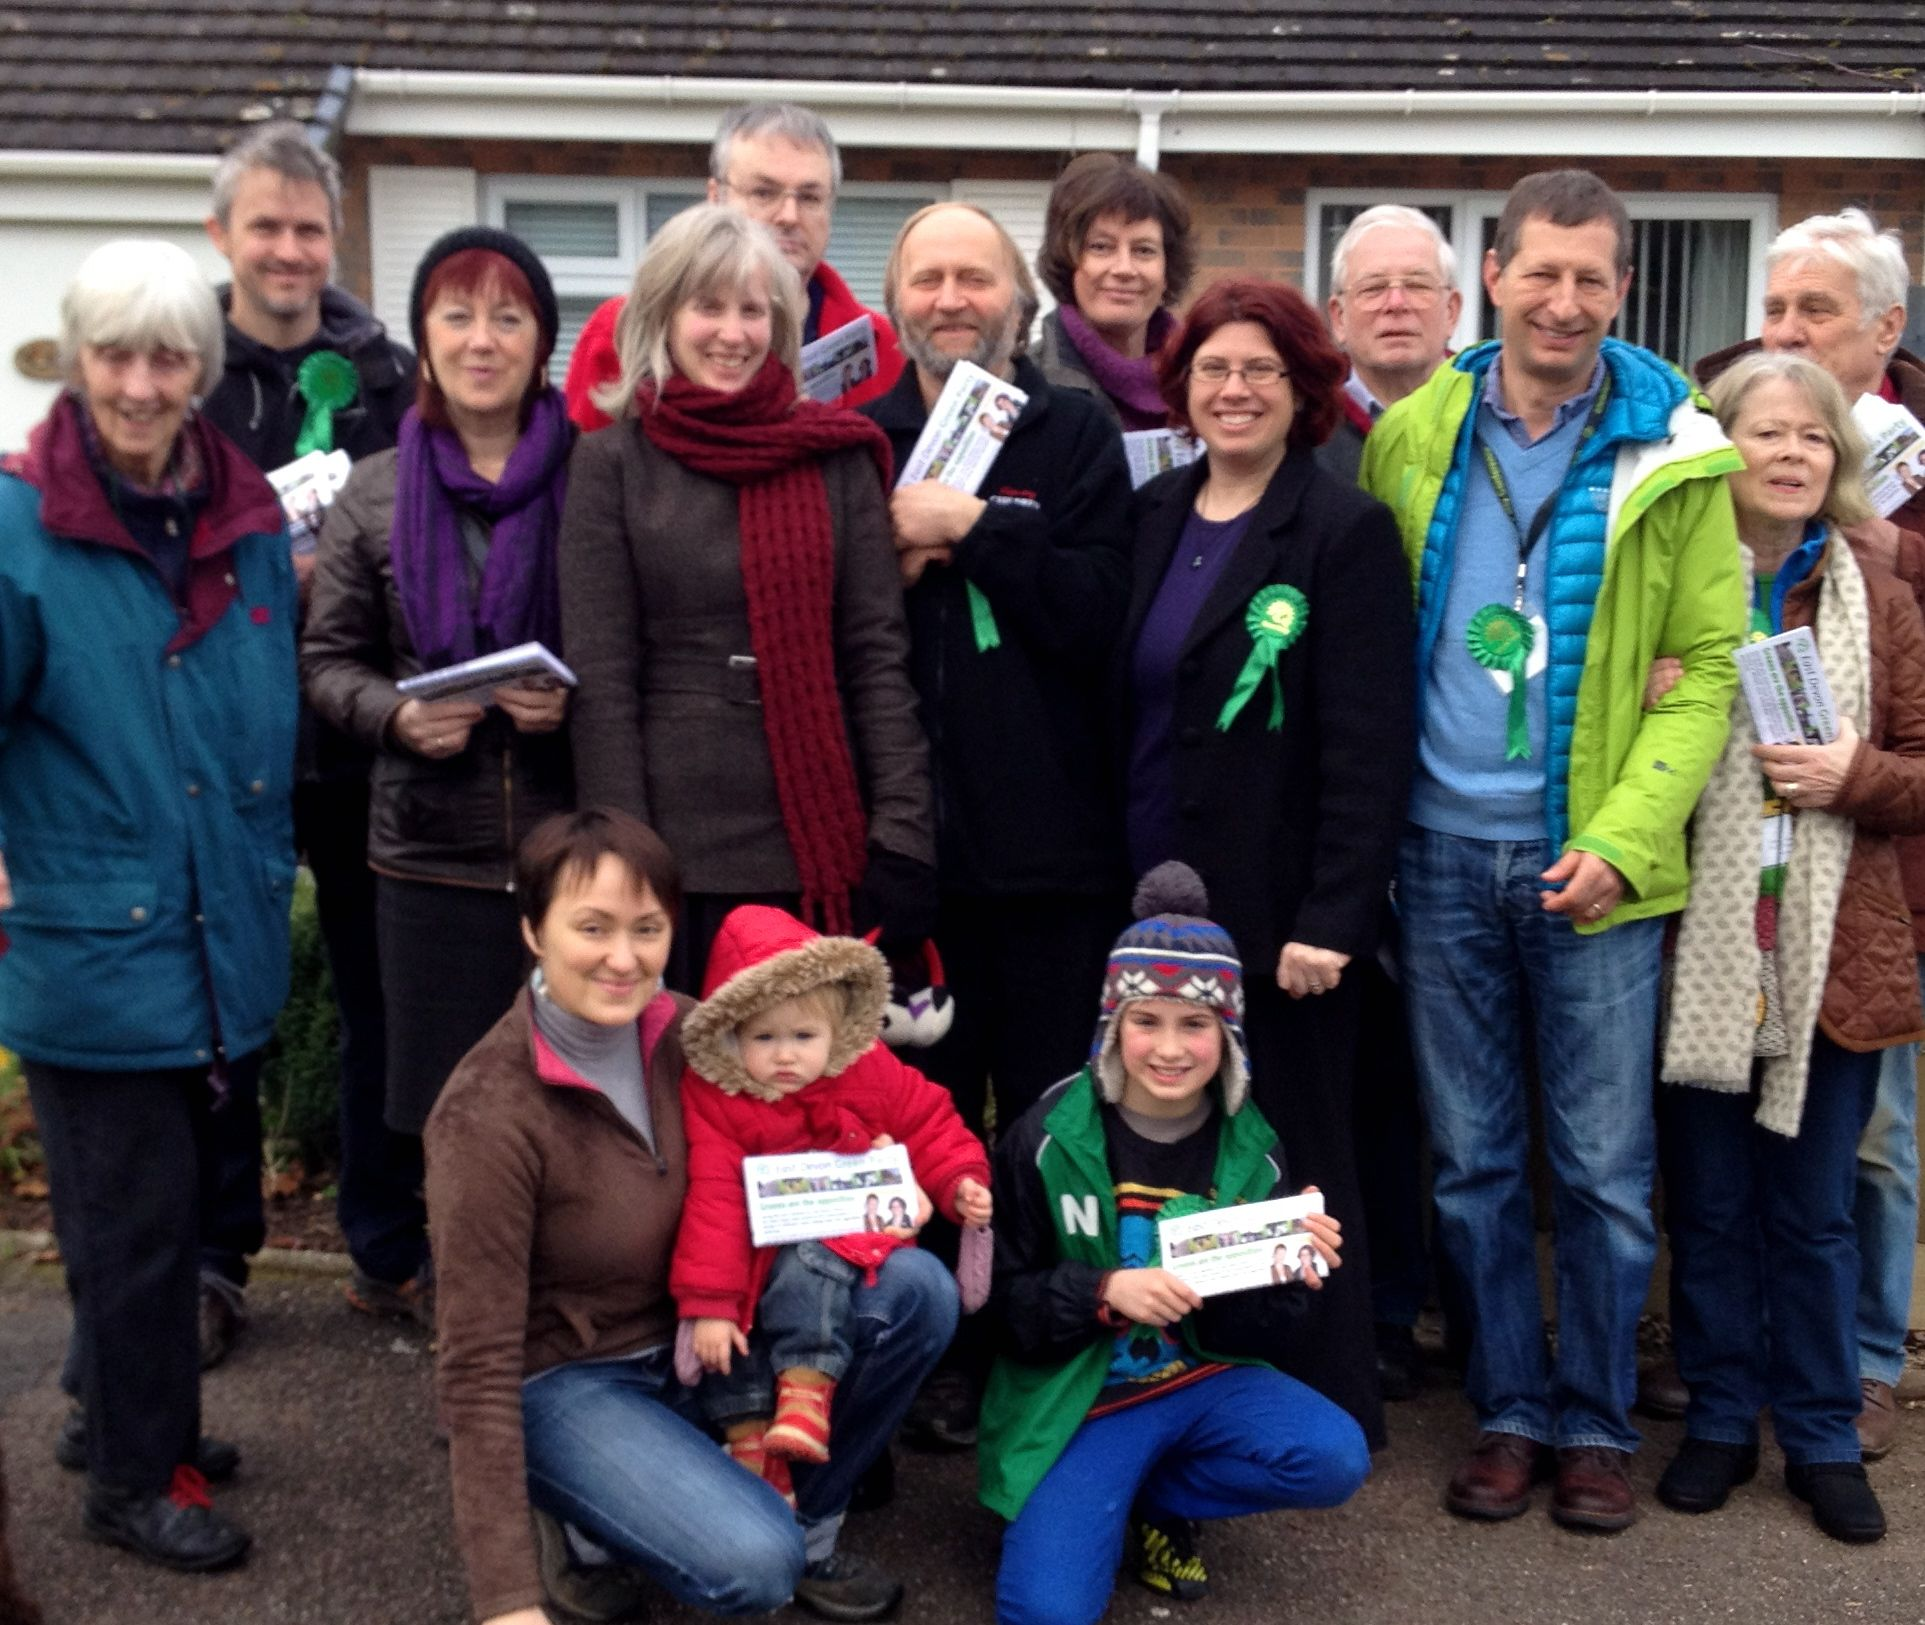 We had 23 members and supporters at our Honiton Action Day on February 16th 2013